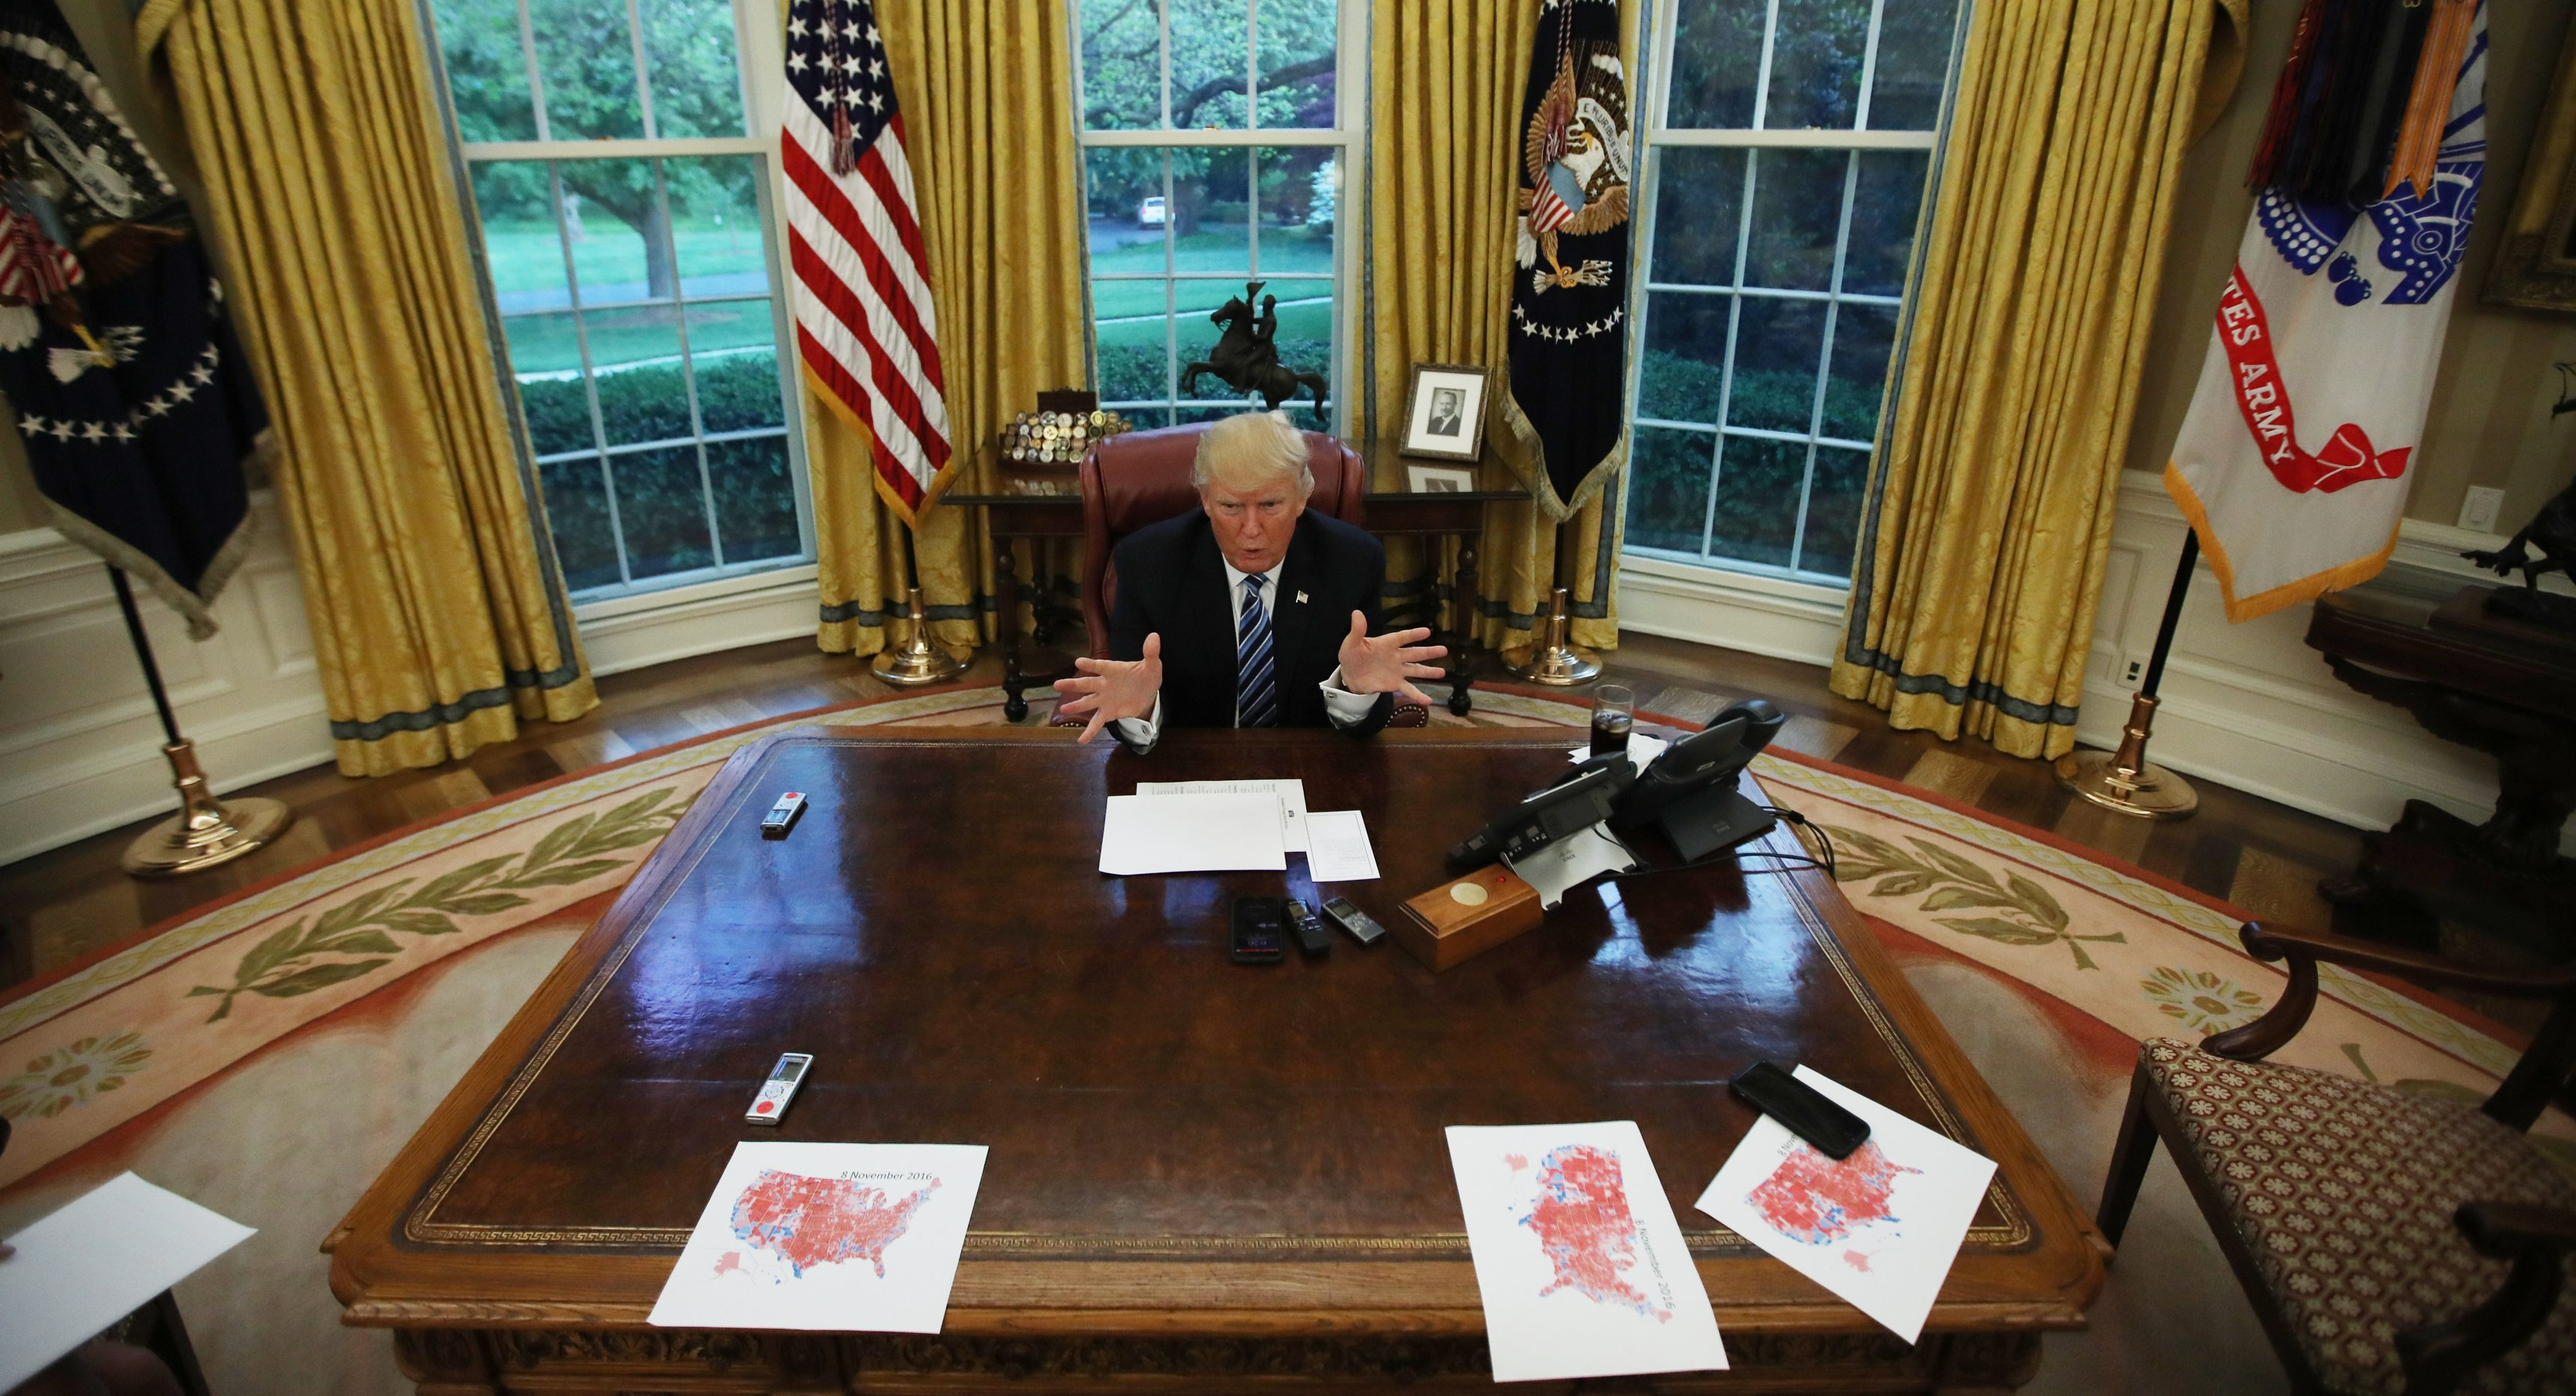 oval office photos. U.S. President Donald Trump Speaks During An Interview With Reuters In The Oval Office Of Photos S